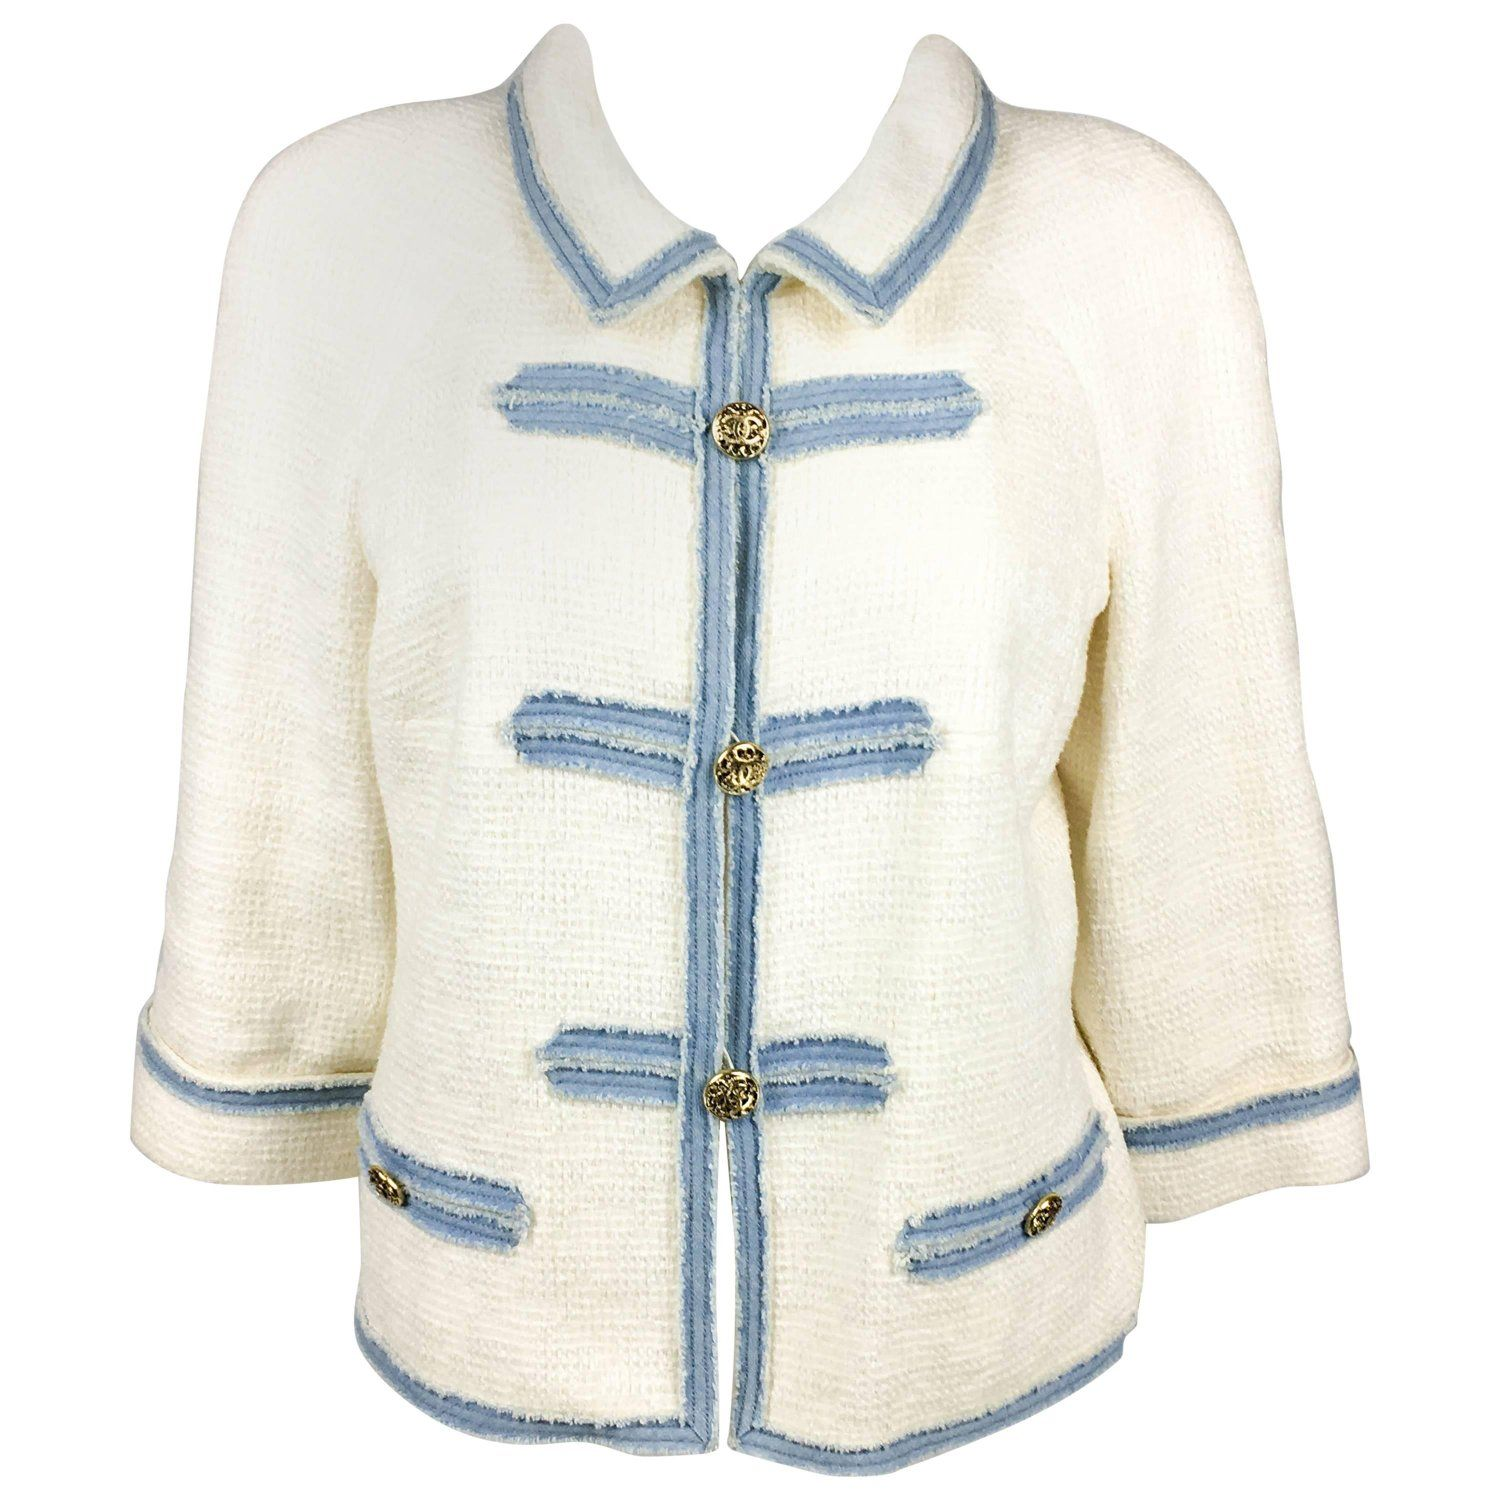 2007 Chanel White Boucle Denim Trimmed Jacket With Logo